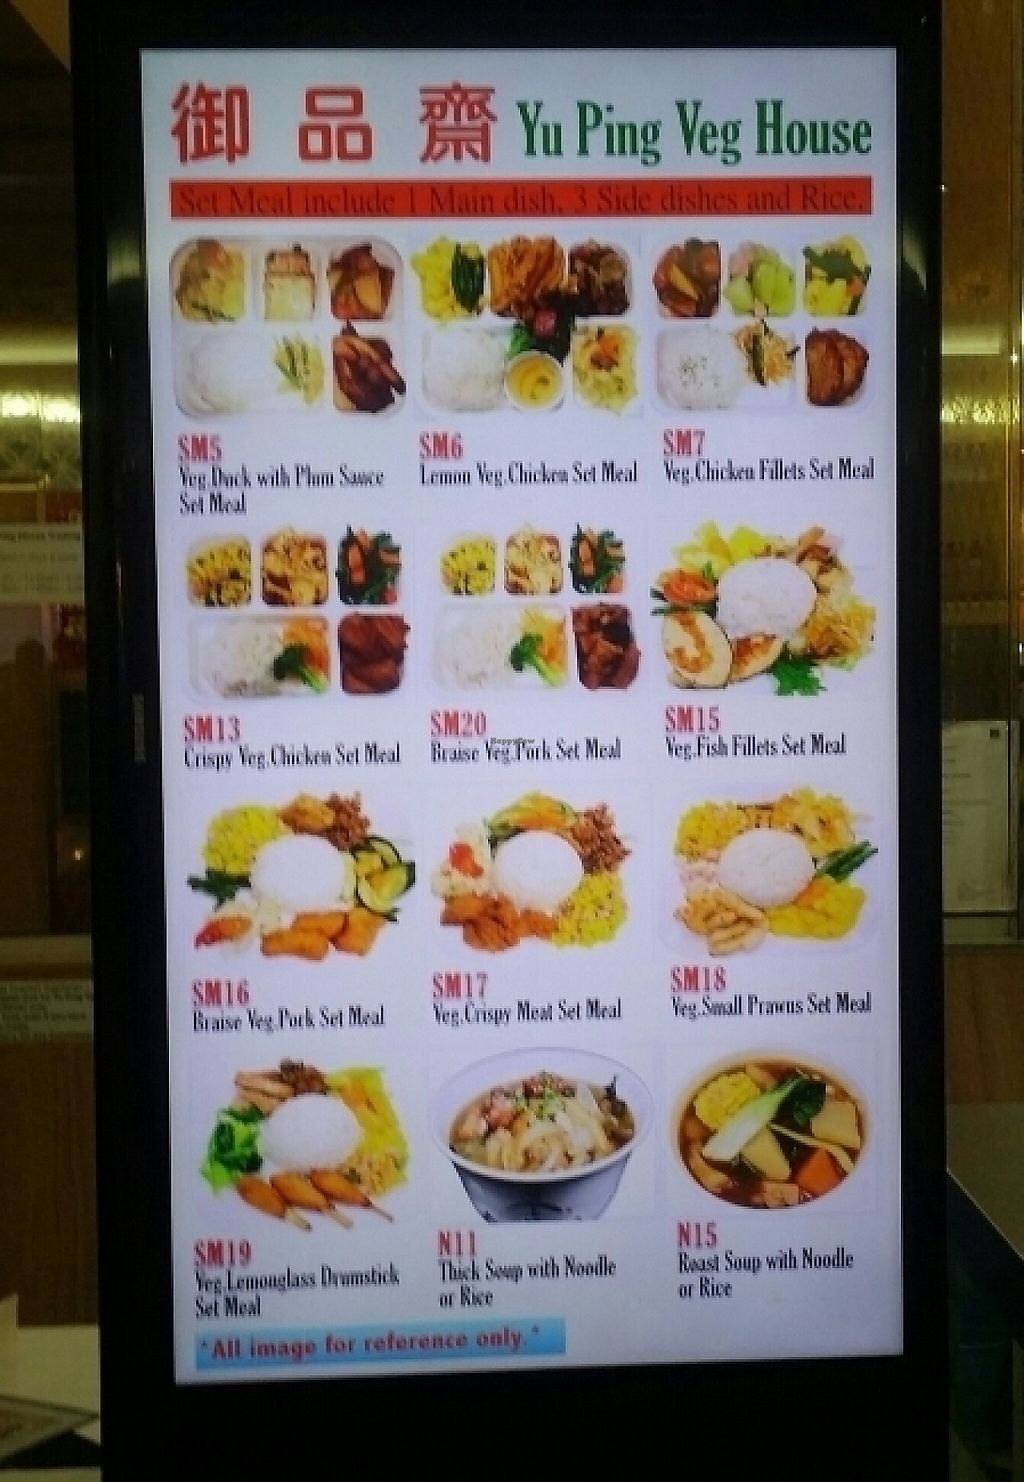 """Photo of CLOSED: Yu Ping Veg House  by <a href=""""/members/profile/Mike%20Munsie"""">Mike Munsie</a> <br/>menu 1 <br/> May 22, 2017  - <a href='/contact/abuse/image/49047/261272'>Report</a>"""